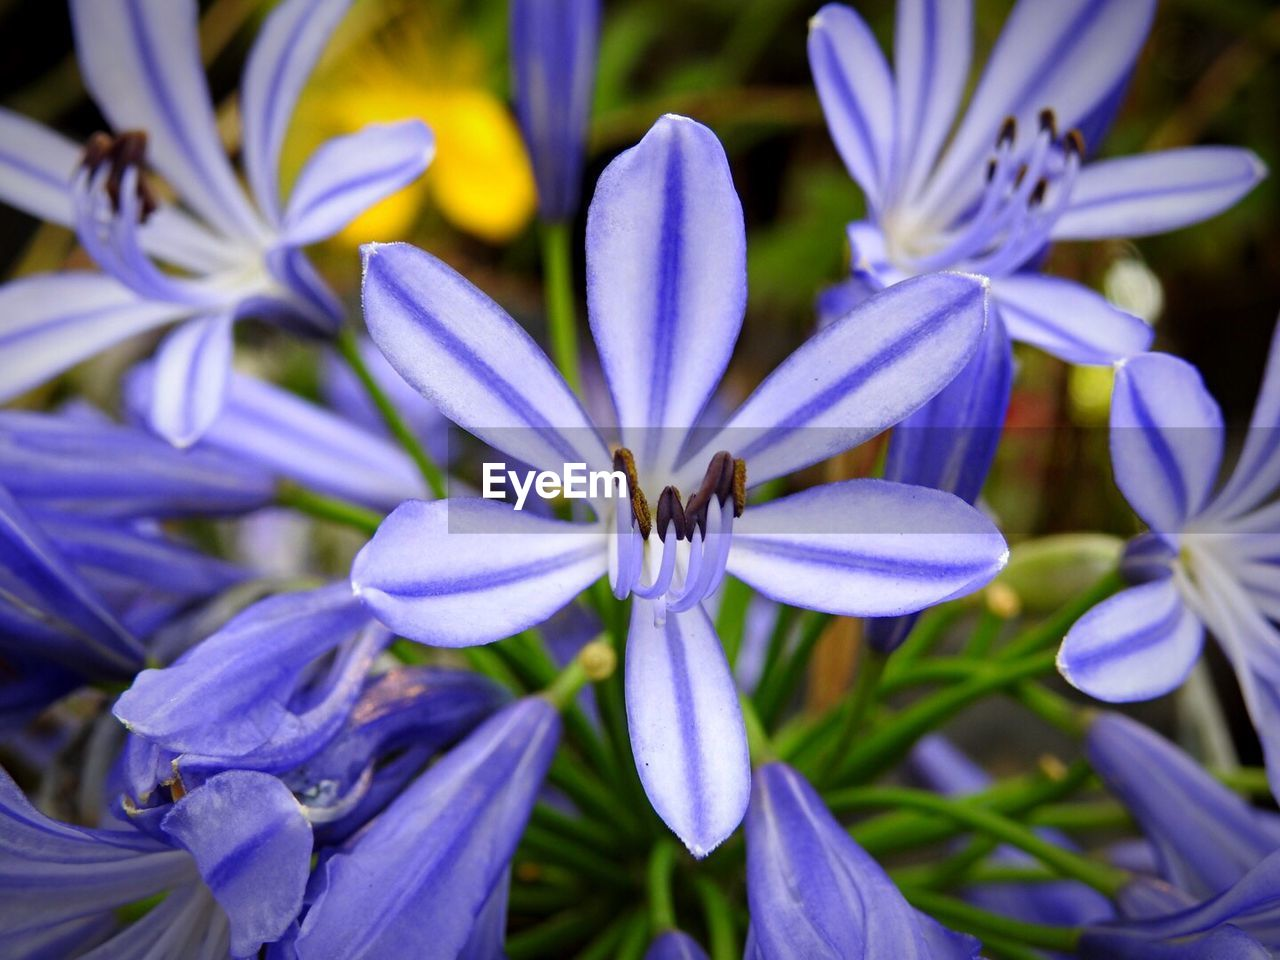 flower, petal, beauty in nature, nature, fragility, flower head, growth, purple, no people, freshness, close-up, outdoors, day, blooming, plant